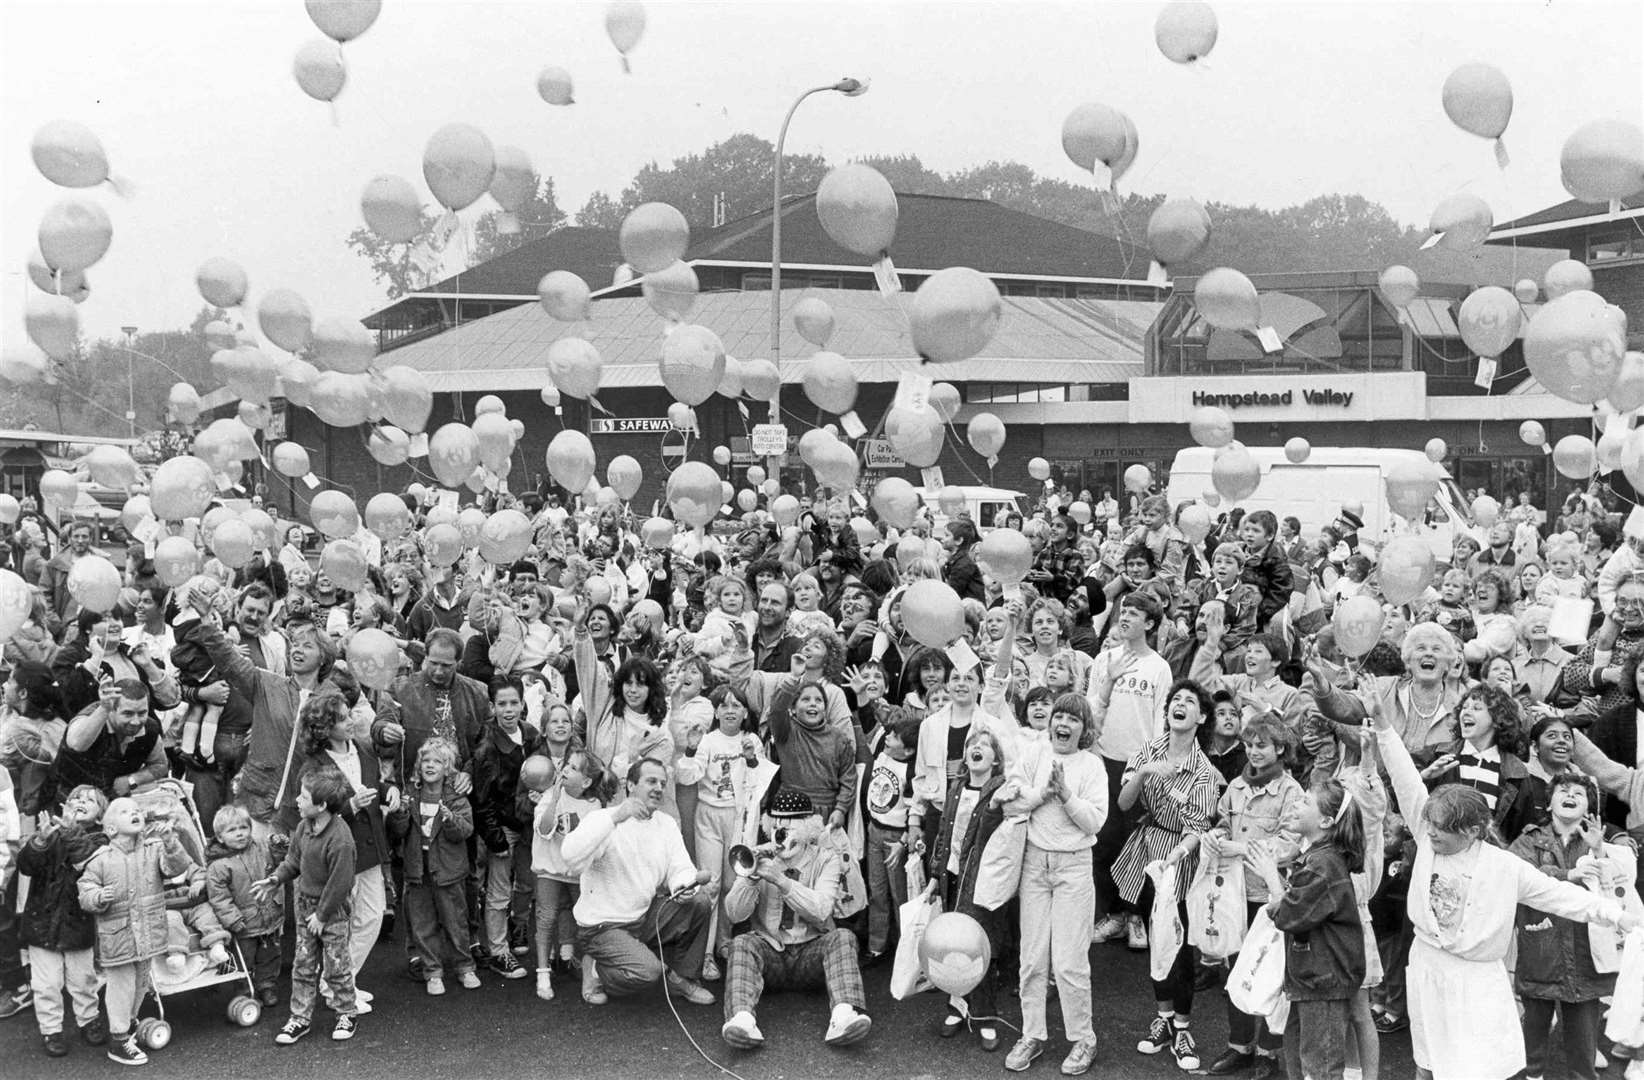 The releasing of balloons for the 10th anniversary of Hempstead Valley Shopping centre in 1988. Picture: Images of Medway book